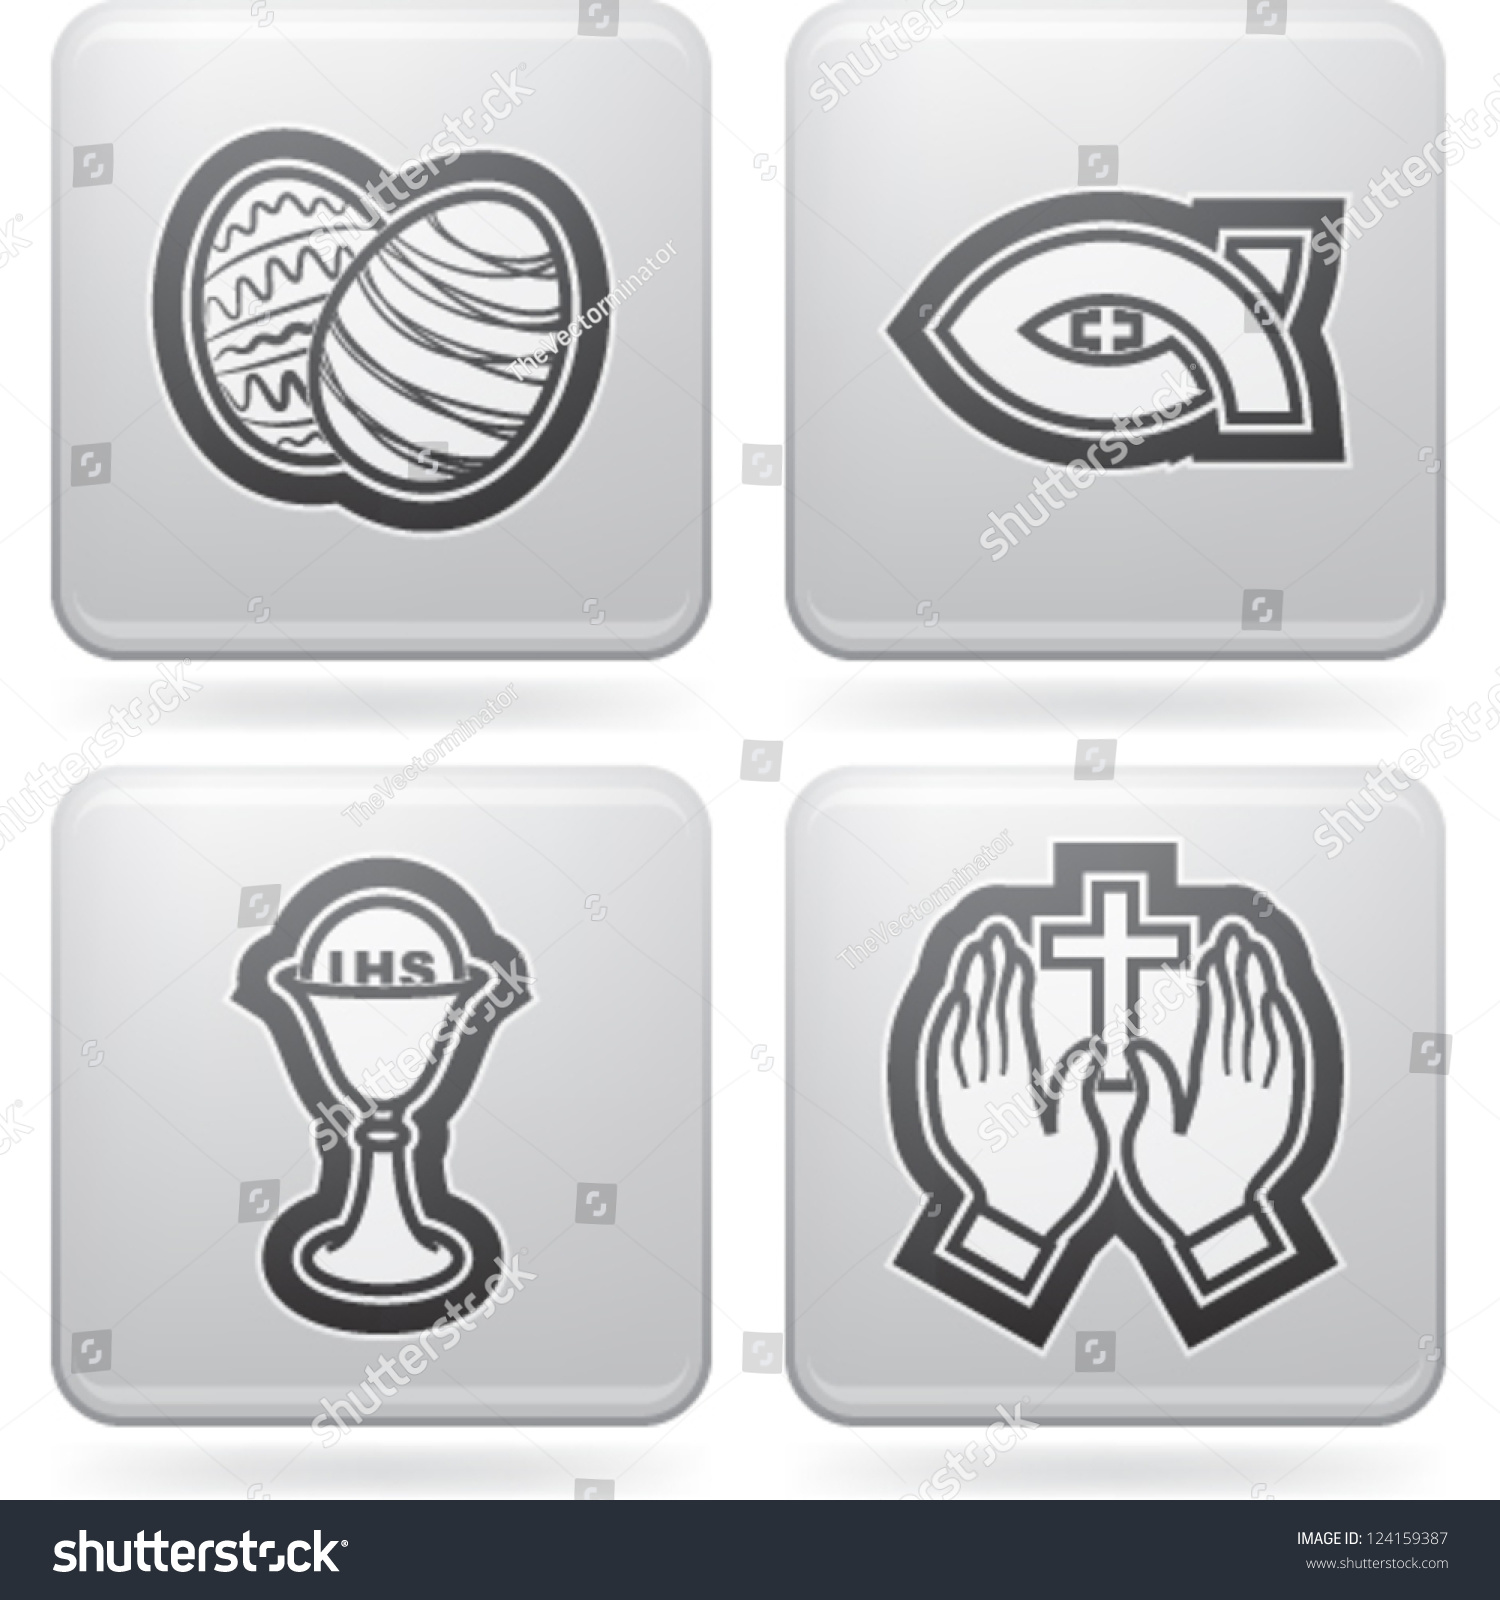 Icons symbols christian easter rituals left stock vector 124159387 icons and symbols of the christian easter rituals from left to right top to biocorpaavc Choice Image